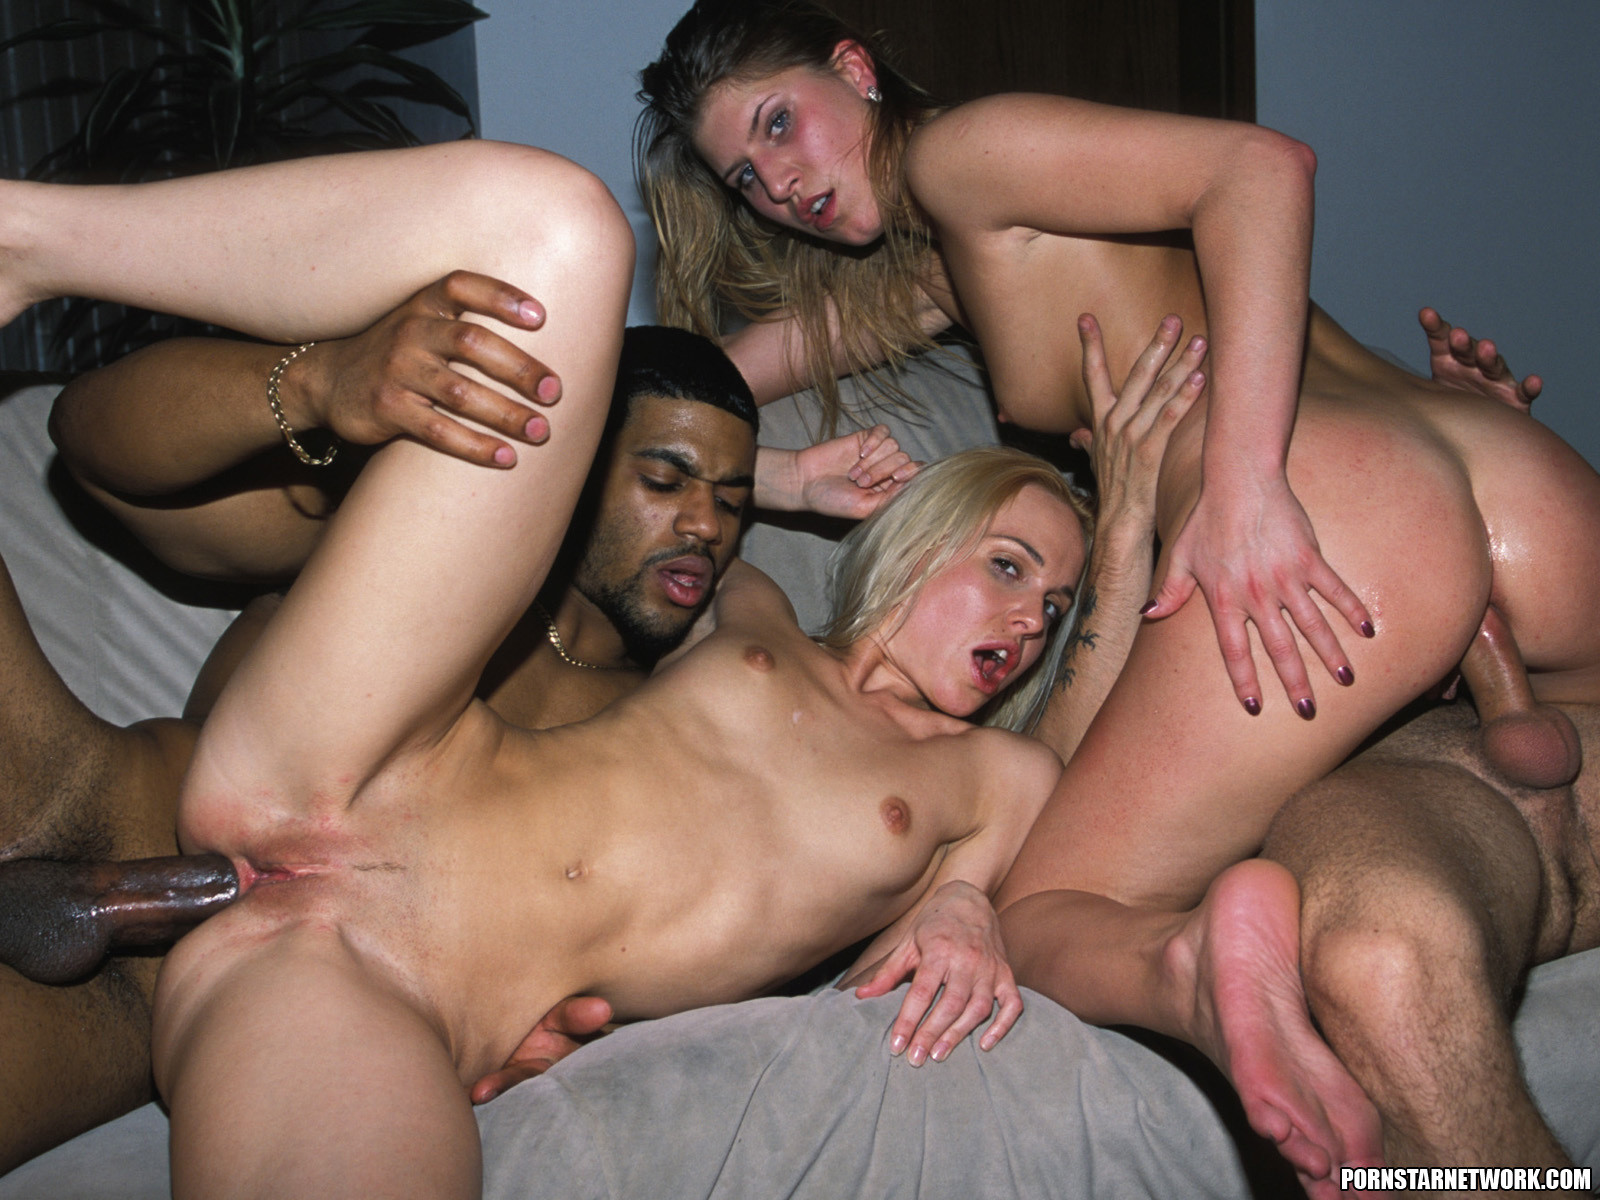 Hot young porn starlets